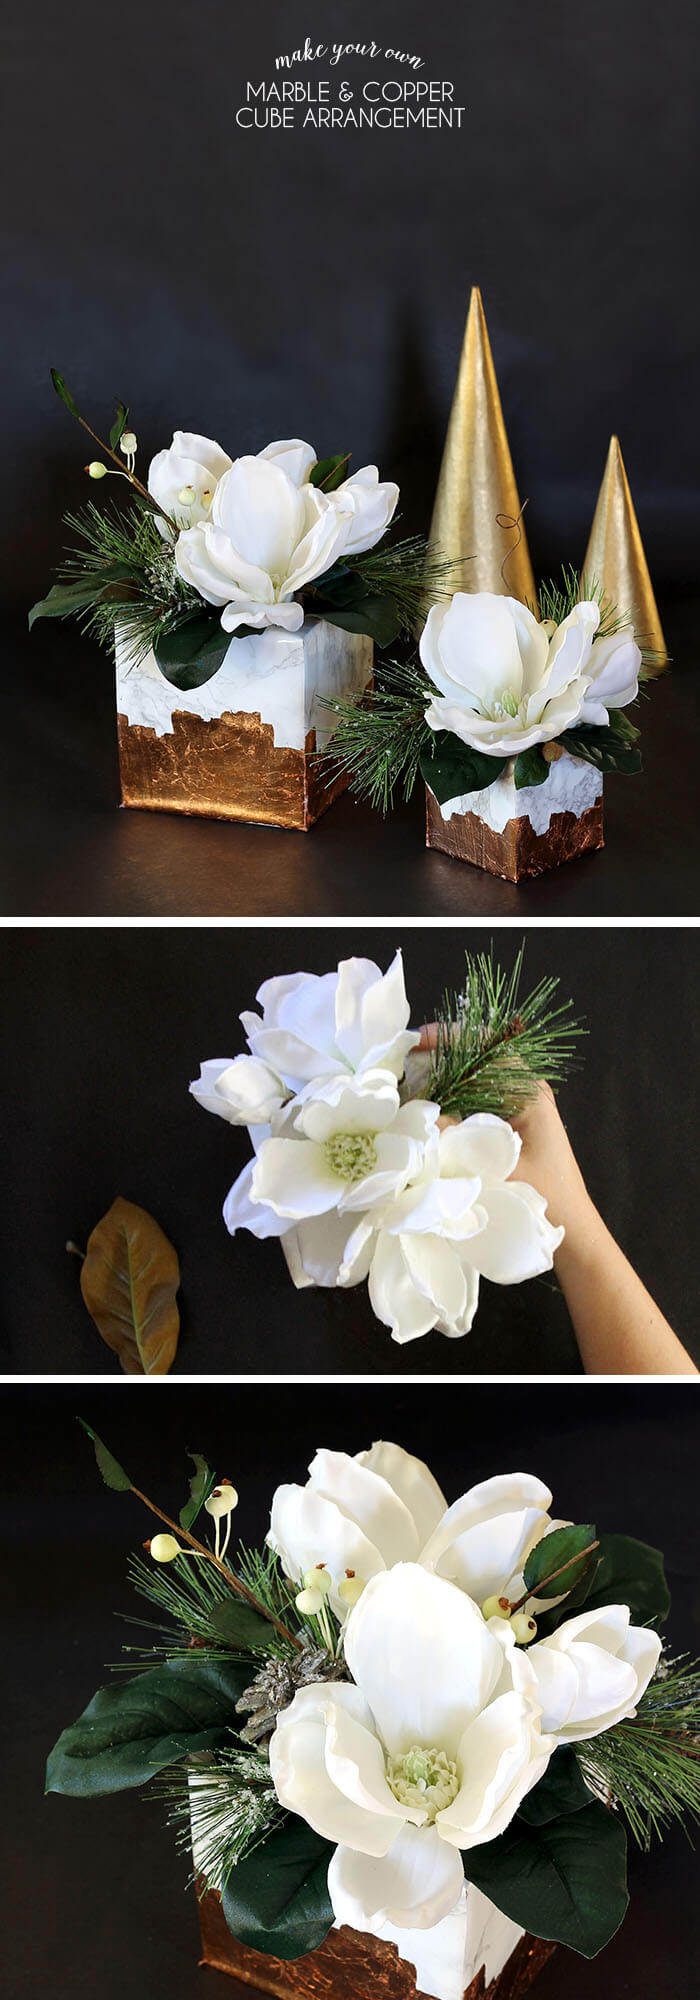 marble and copper cube arrangement - pretty winter floral craft